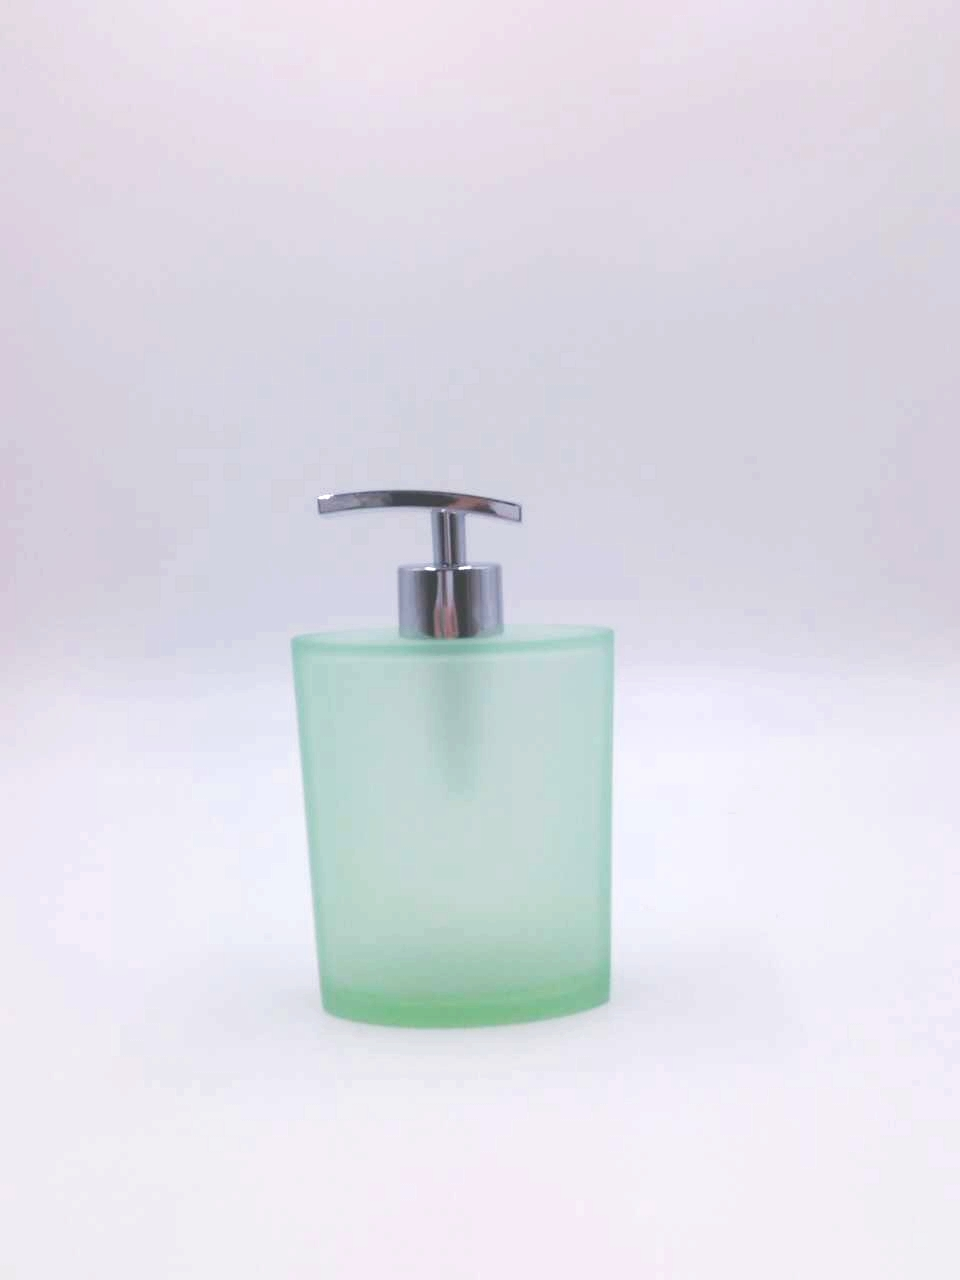 China Shenzhen Factory Translucent Light Green Matt Frost Resin Bath Set for Home and Hotel new arrival 2019